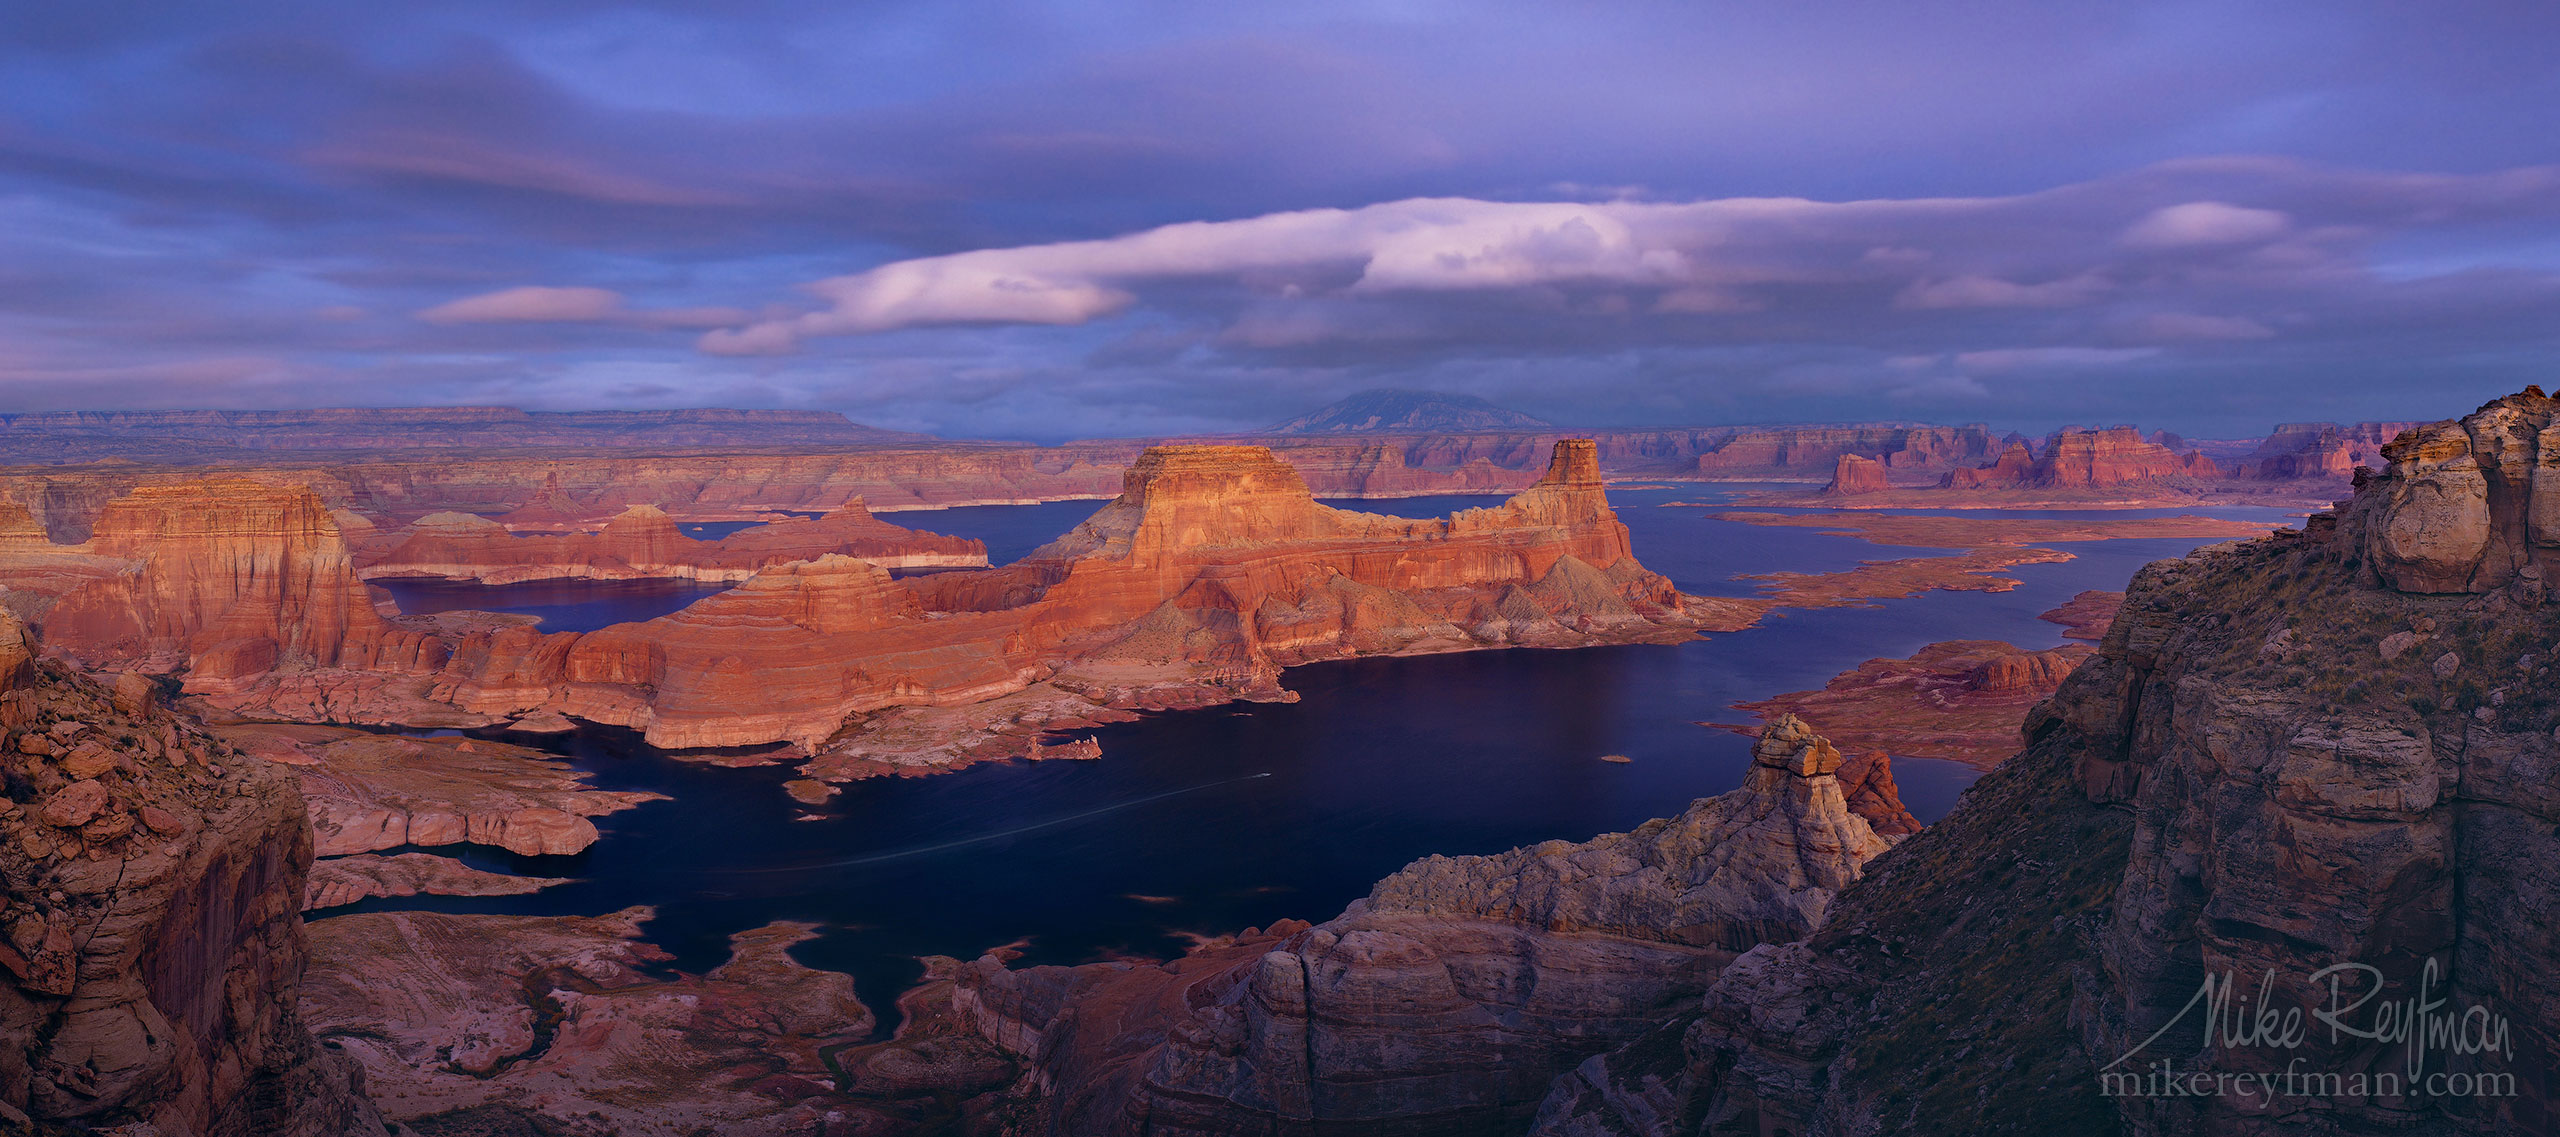 Romana Mesa, Alstrom Point. Gunsight Butte in Padre Bay. Lake Powell, Glen Canyon NRA, Uta/Arizona, USA. 017-LP3_Alstrom-Point_Pano_1x2.25.jpg - Lake Powell, Glen Canyon NAR. Colorado and Sun Juan Rivers. Utah/Arizona, USA  - Mike Reyfman Photography